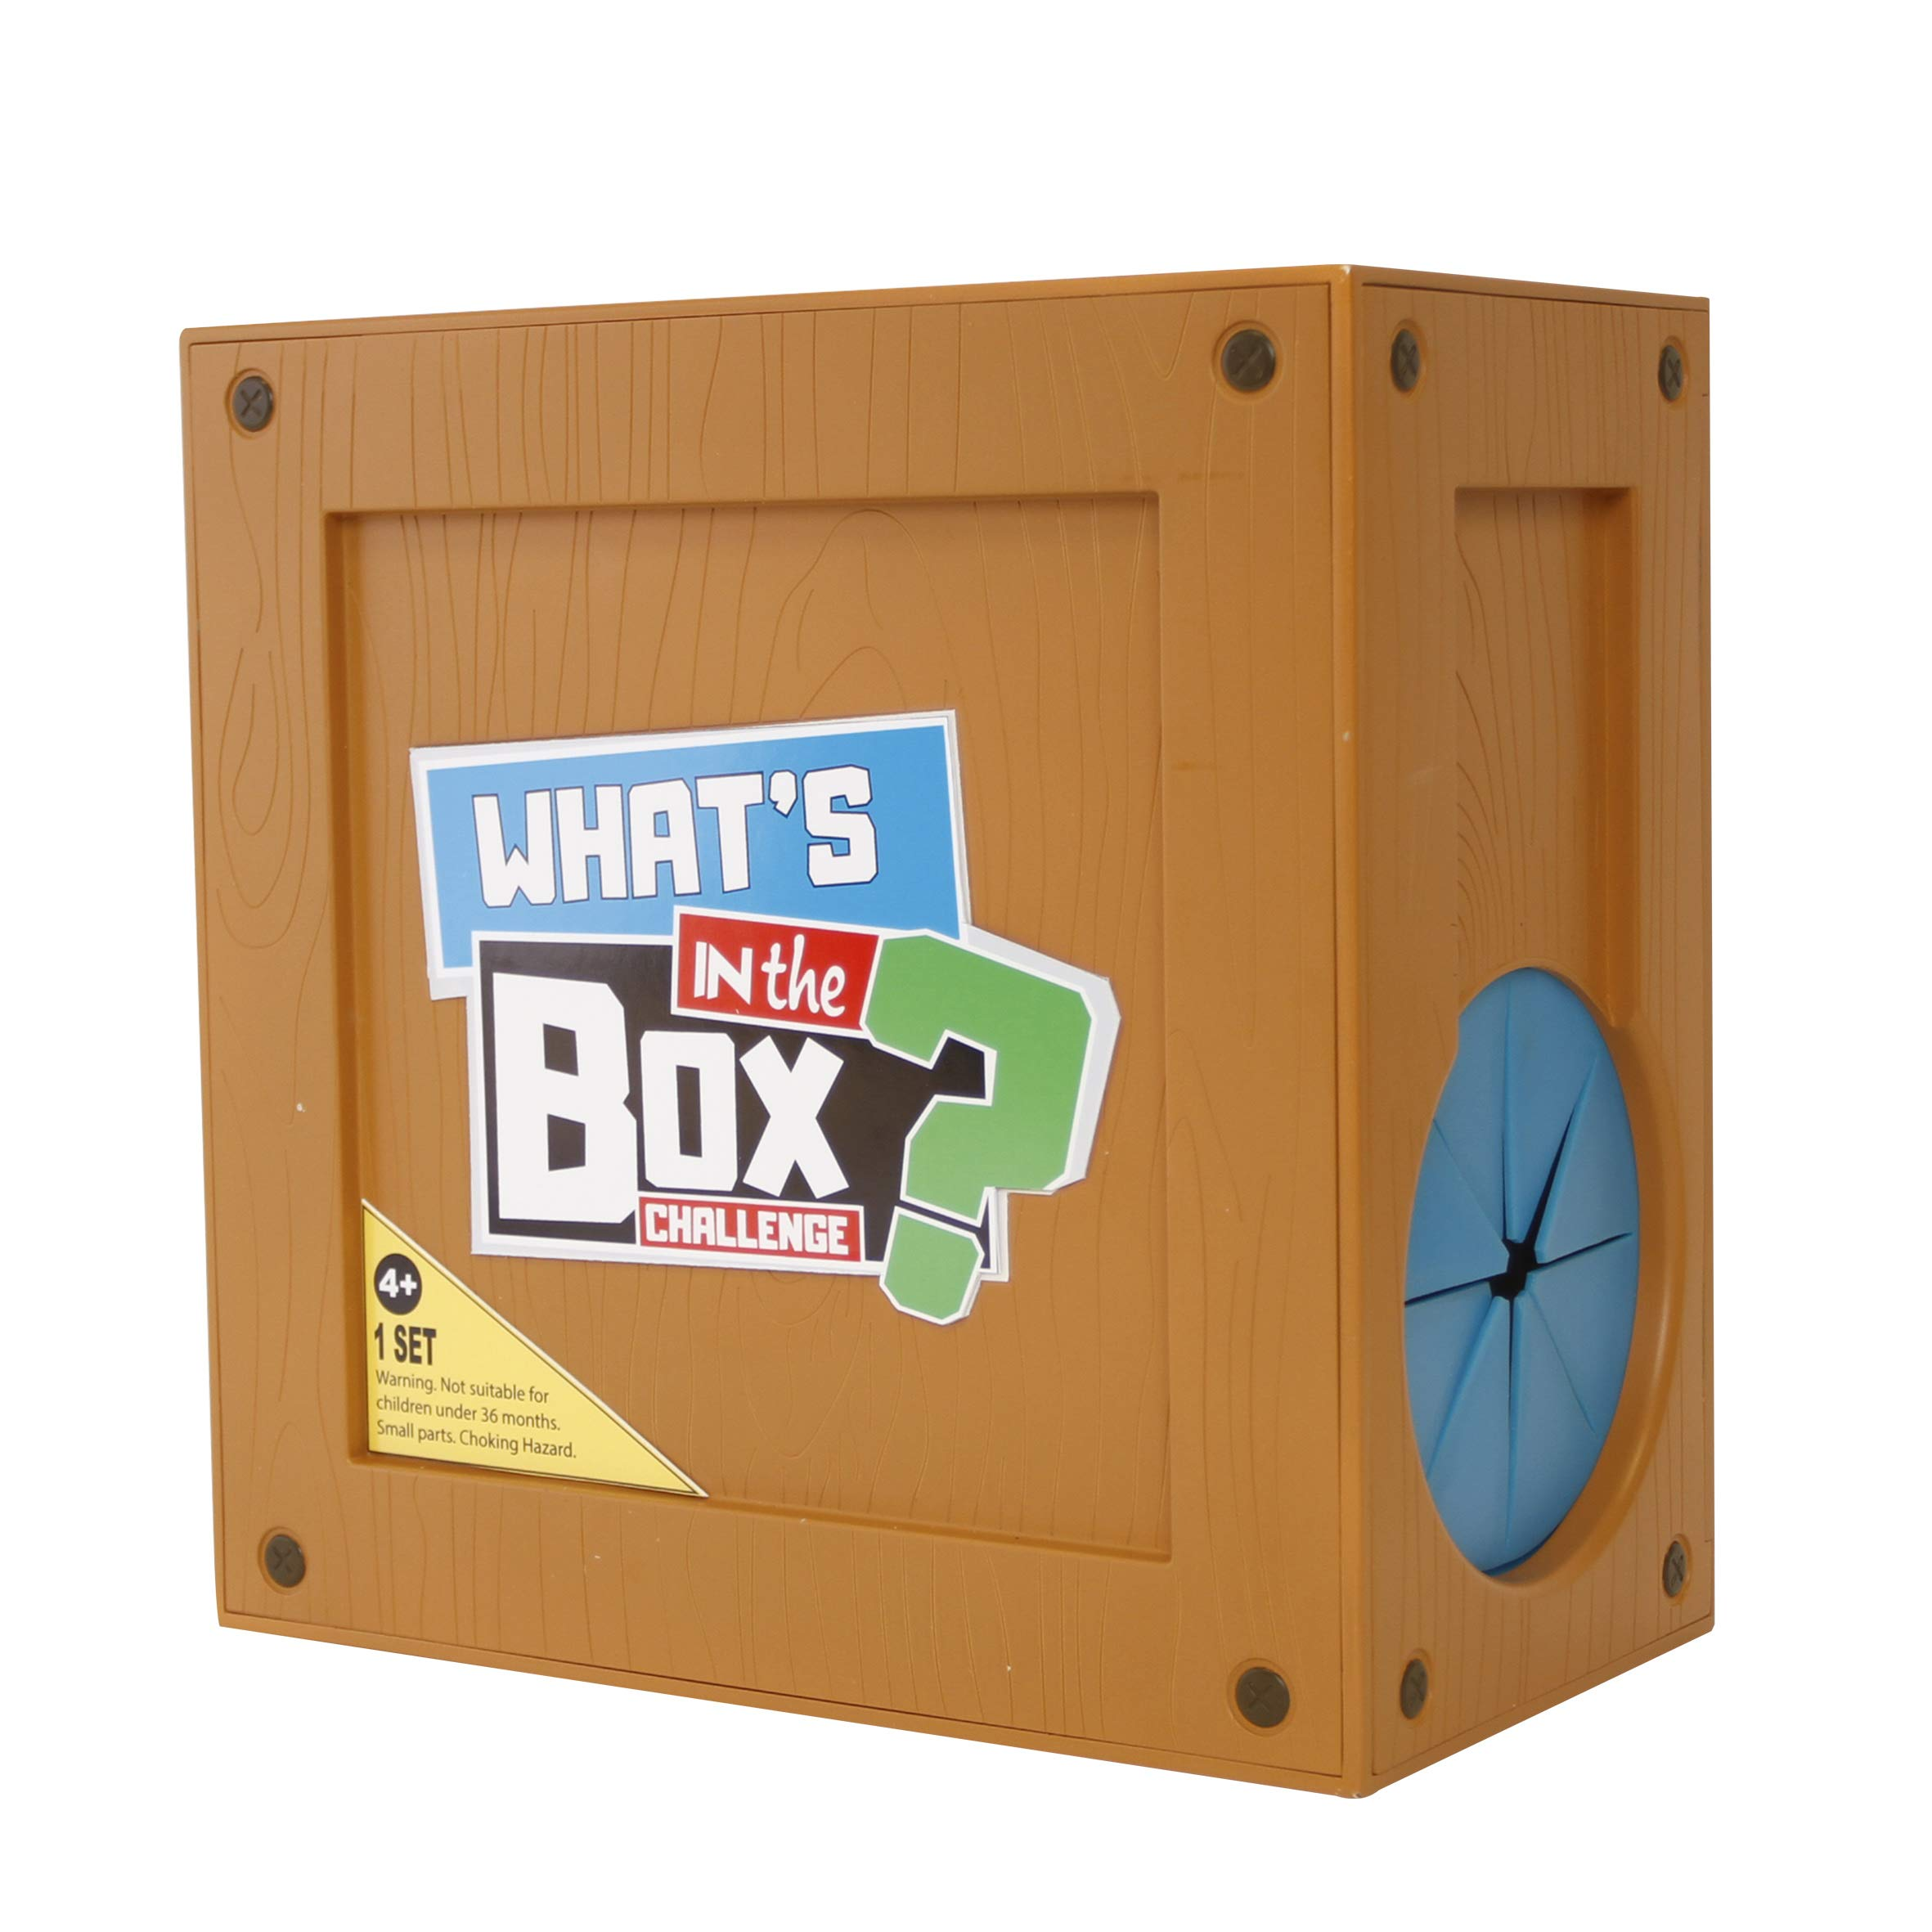 CHTK4 40300 What's in The What's in The Box Challenge, No Colour